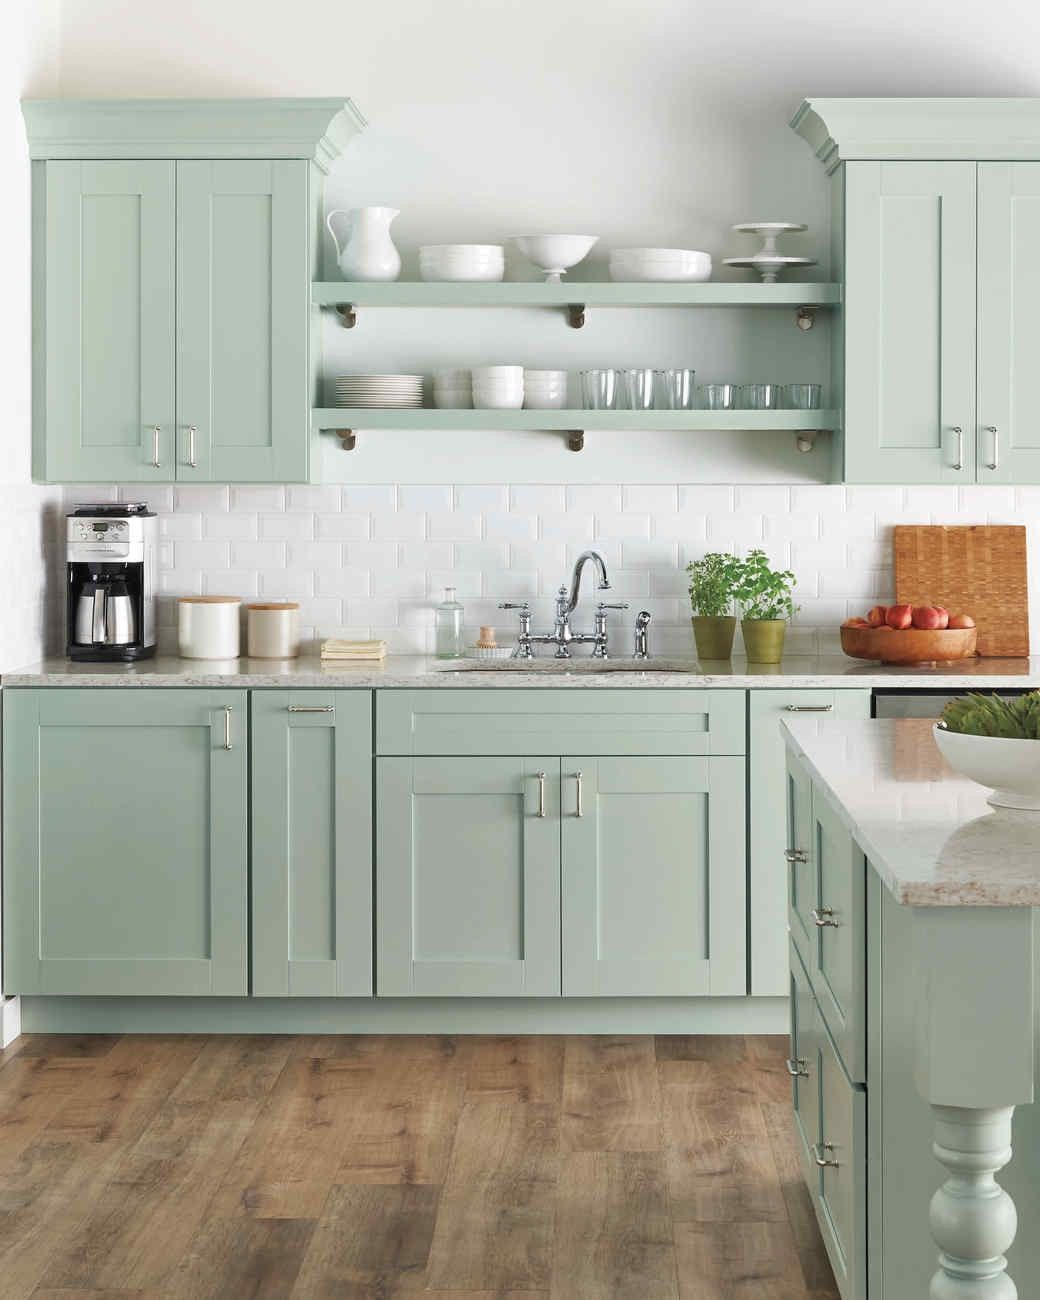 Inspirational Home Depot Kitchen Cabinets By Martha Stewart The Stylish In Addition To Beaut Home Depot Kitchen Cottage Kitchen Design Green Kitchen Cabinets